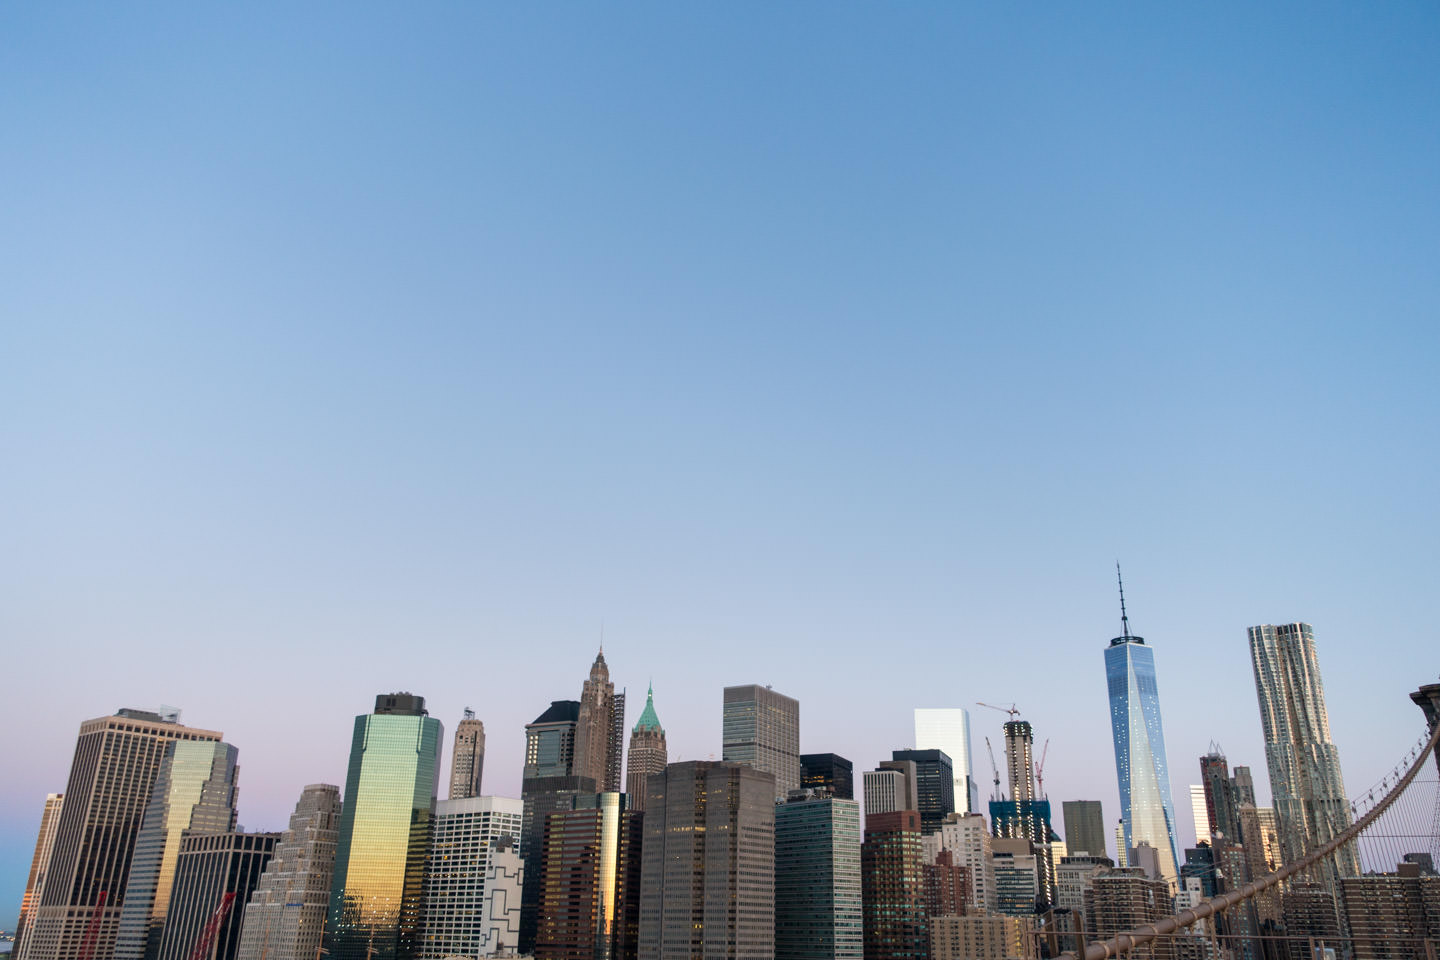 Blog-Mode-And-The-City-Lifestyle-New-York-Air-France-Jean-Imbert-3